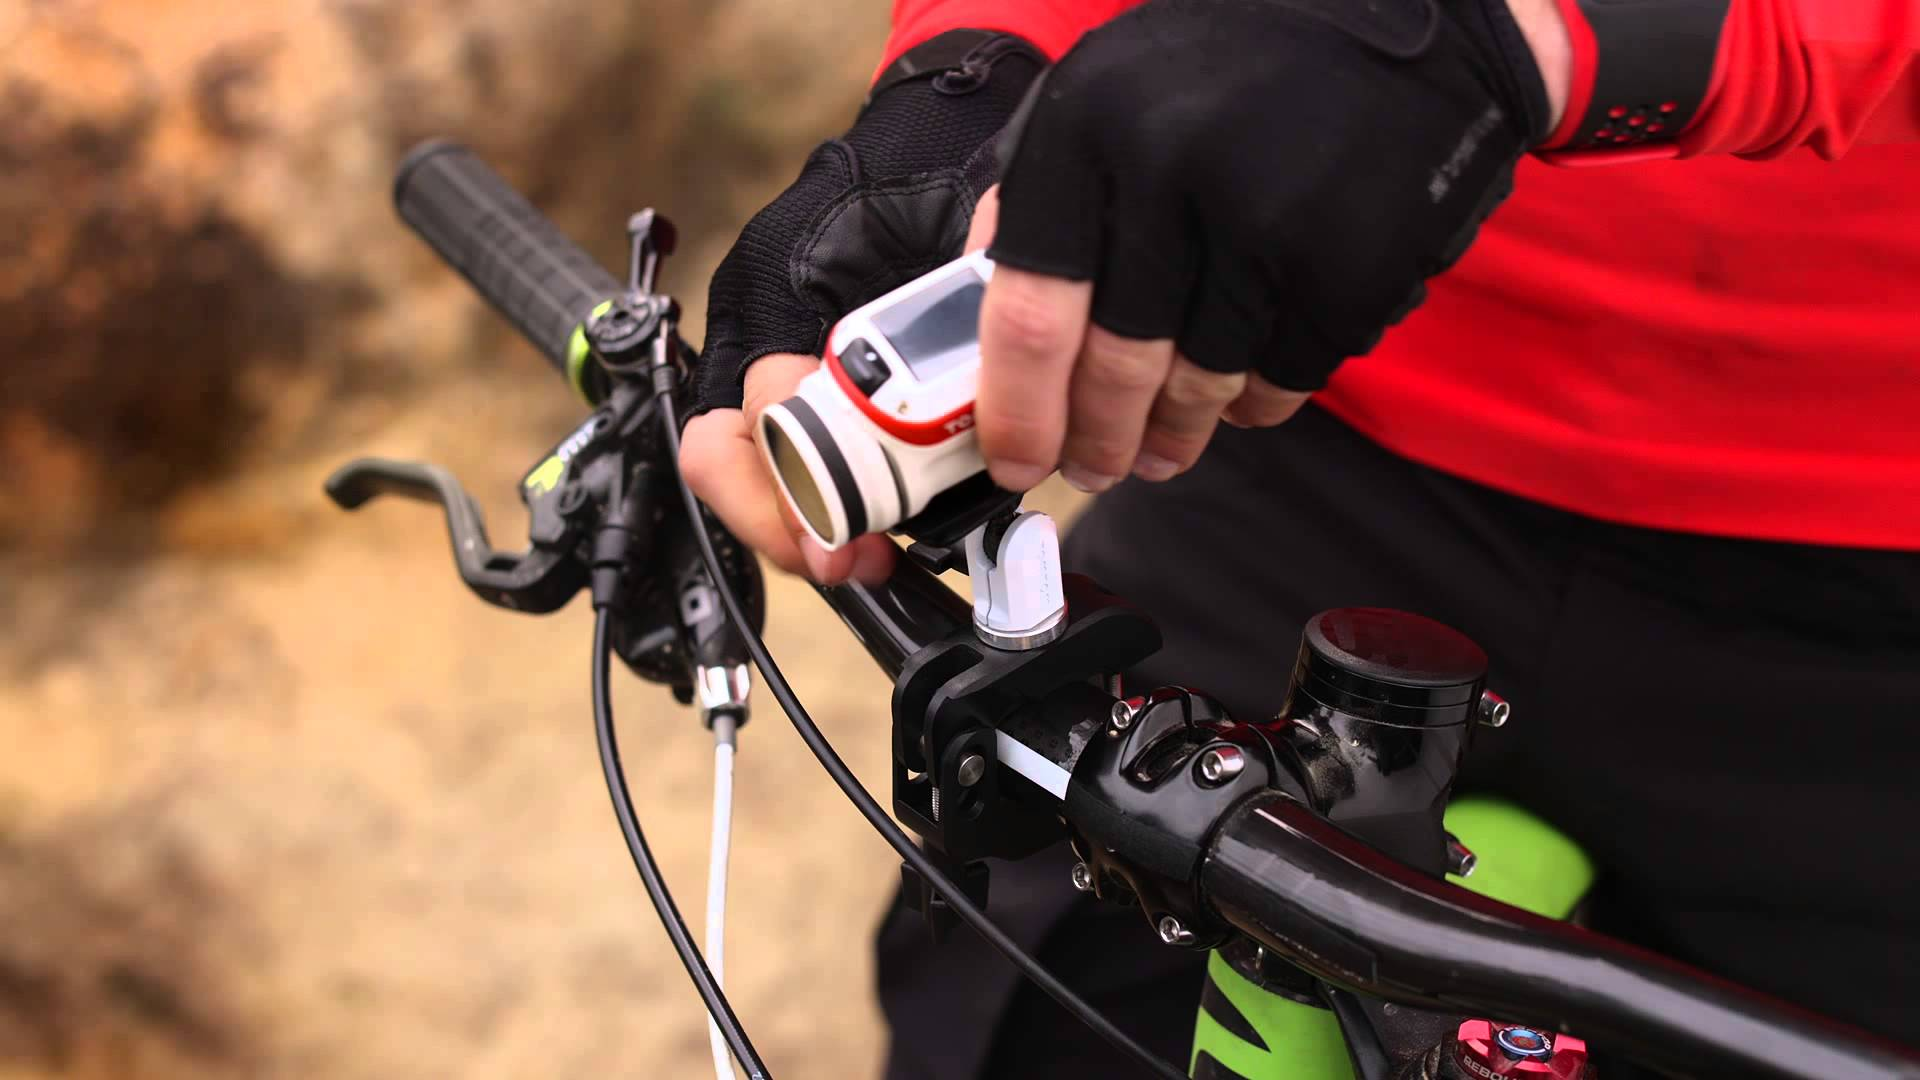 TomTom Bandit – How to use the bike mount